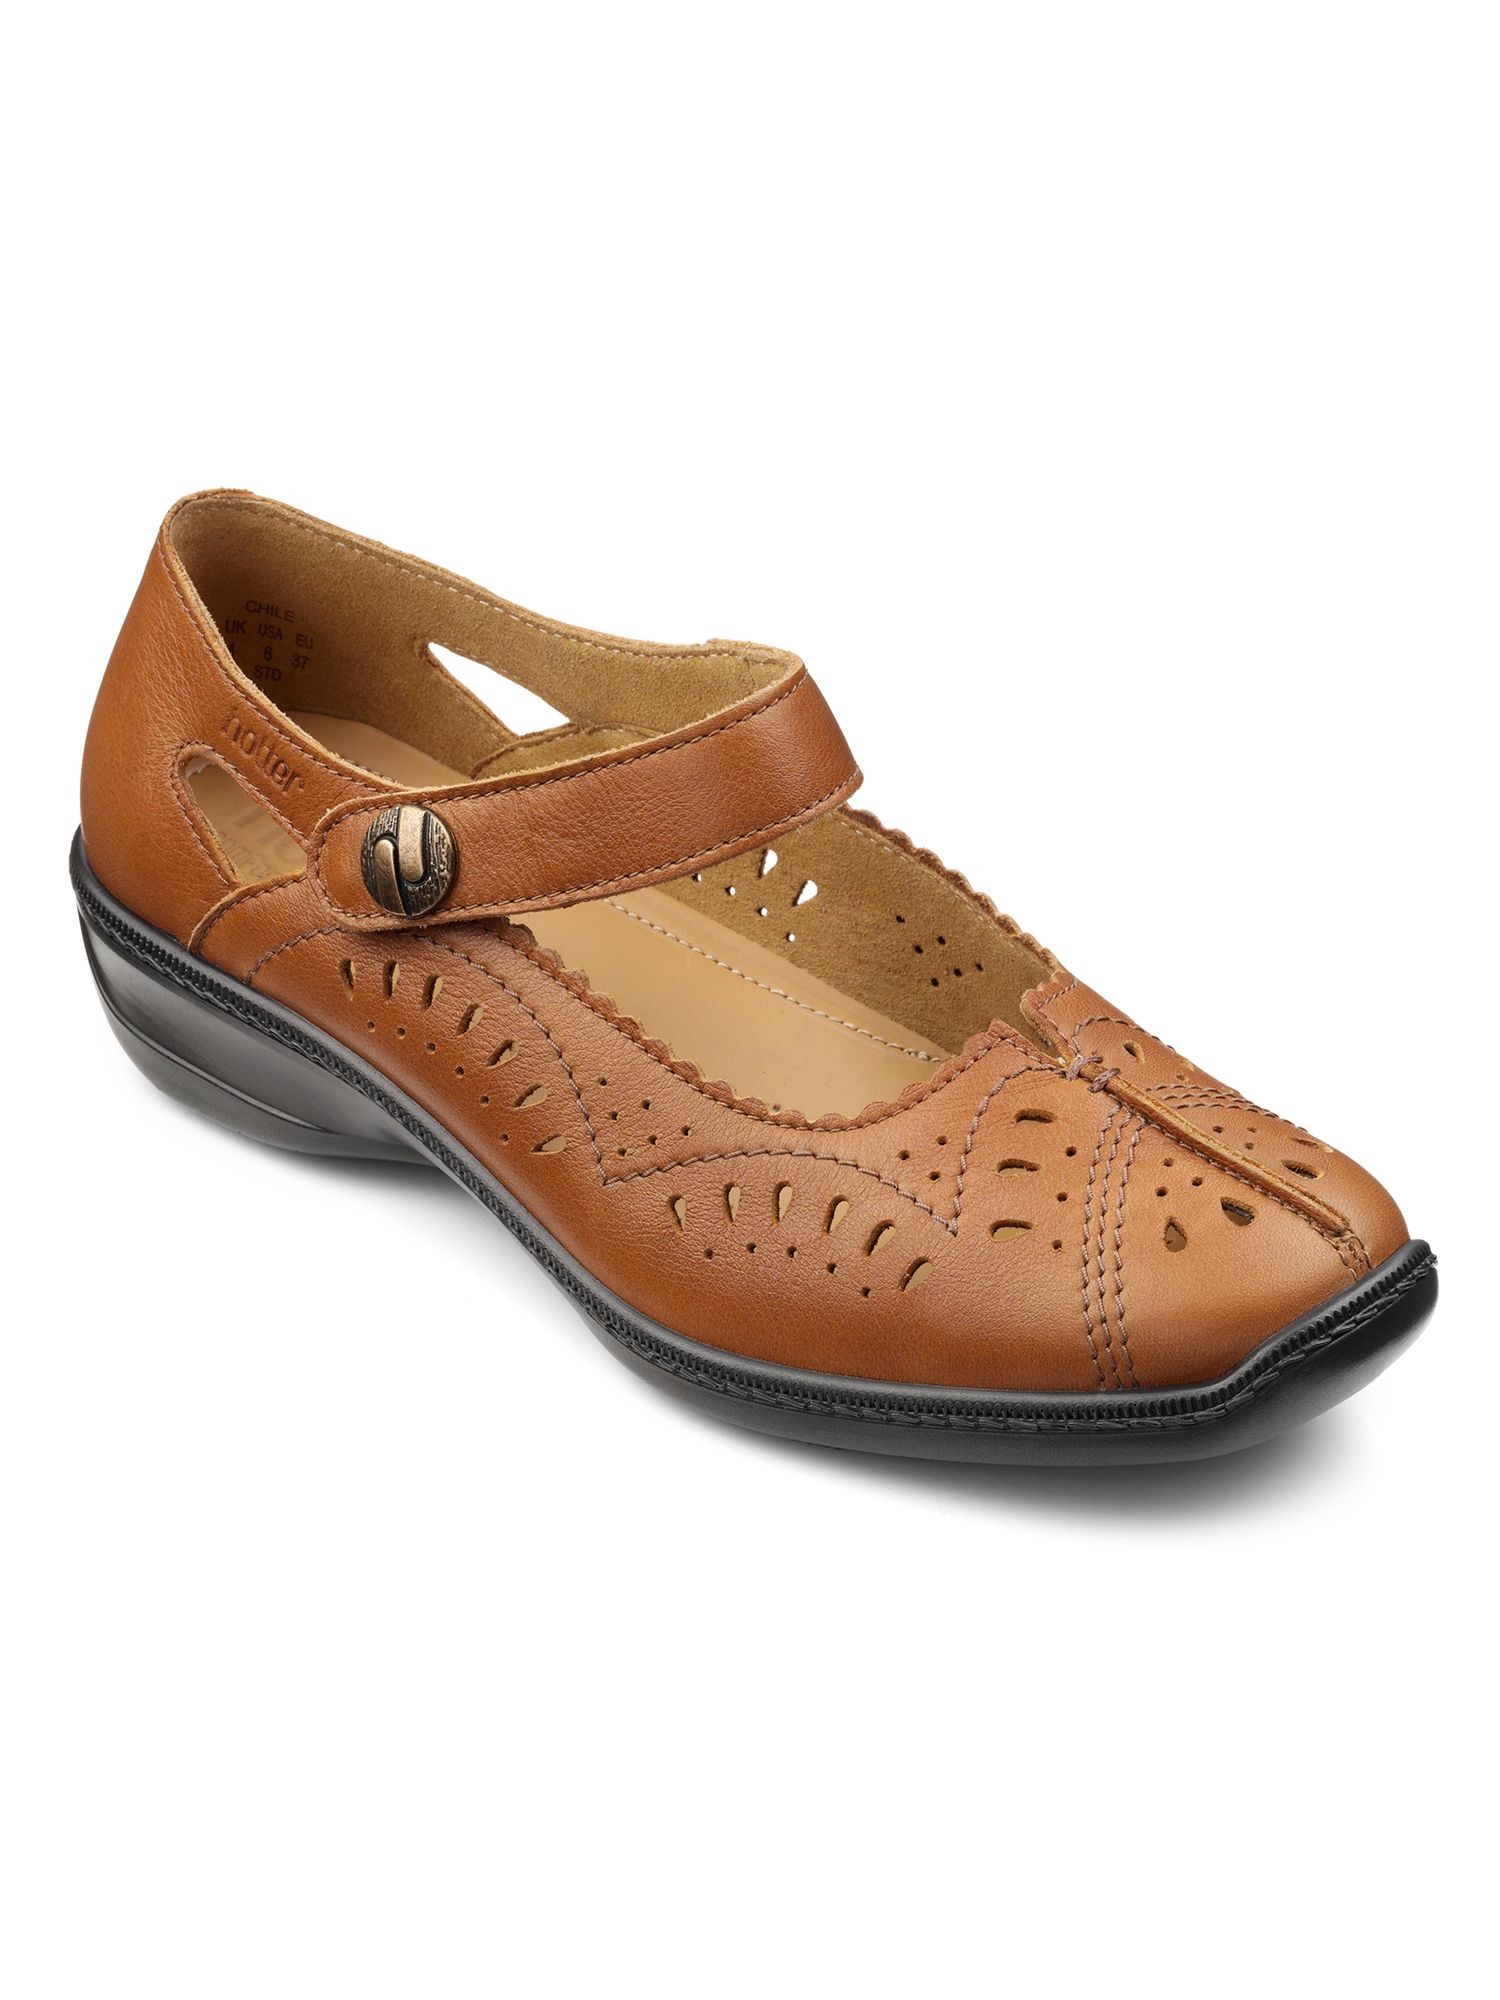 Hotter Chile ladies court shoes, Tan